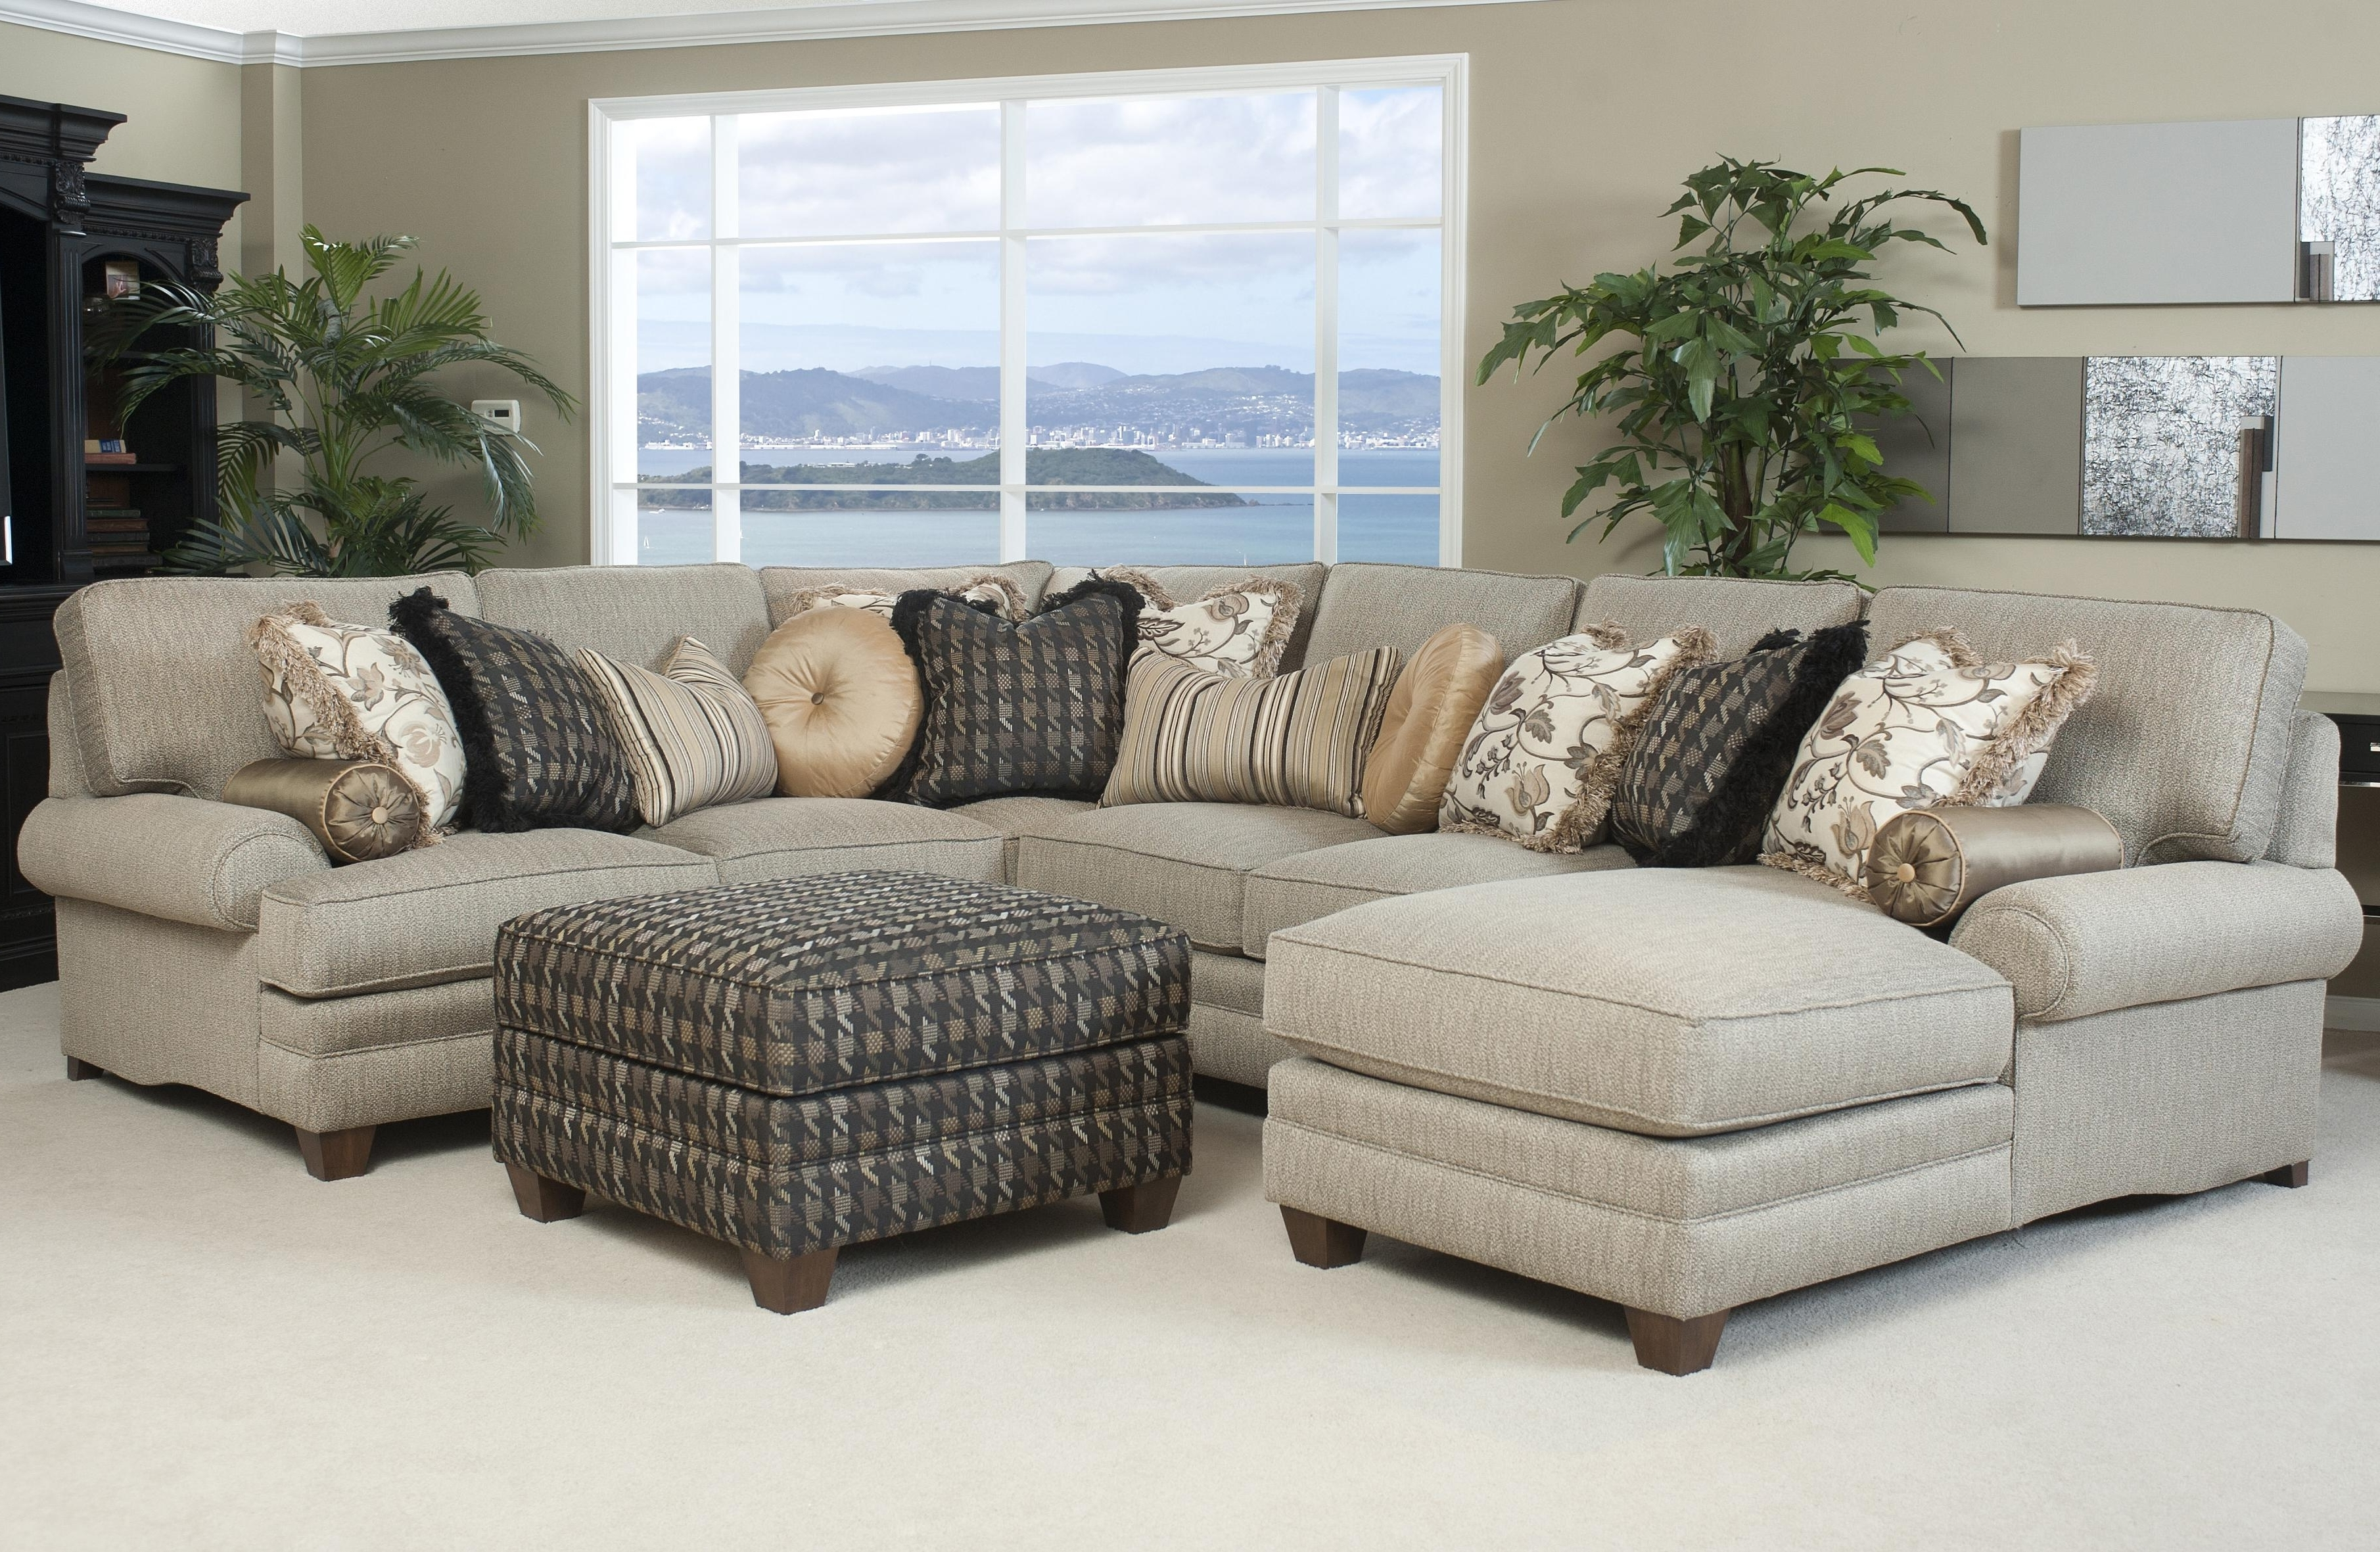 Comfy Sectional Sofas Throughout Fashionable Most Comfortable Leather Sectional Sofa • Leather Sofa (View 5 of 15)